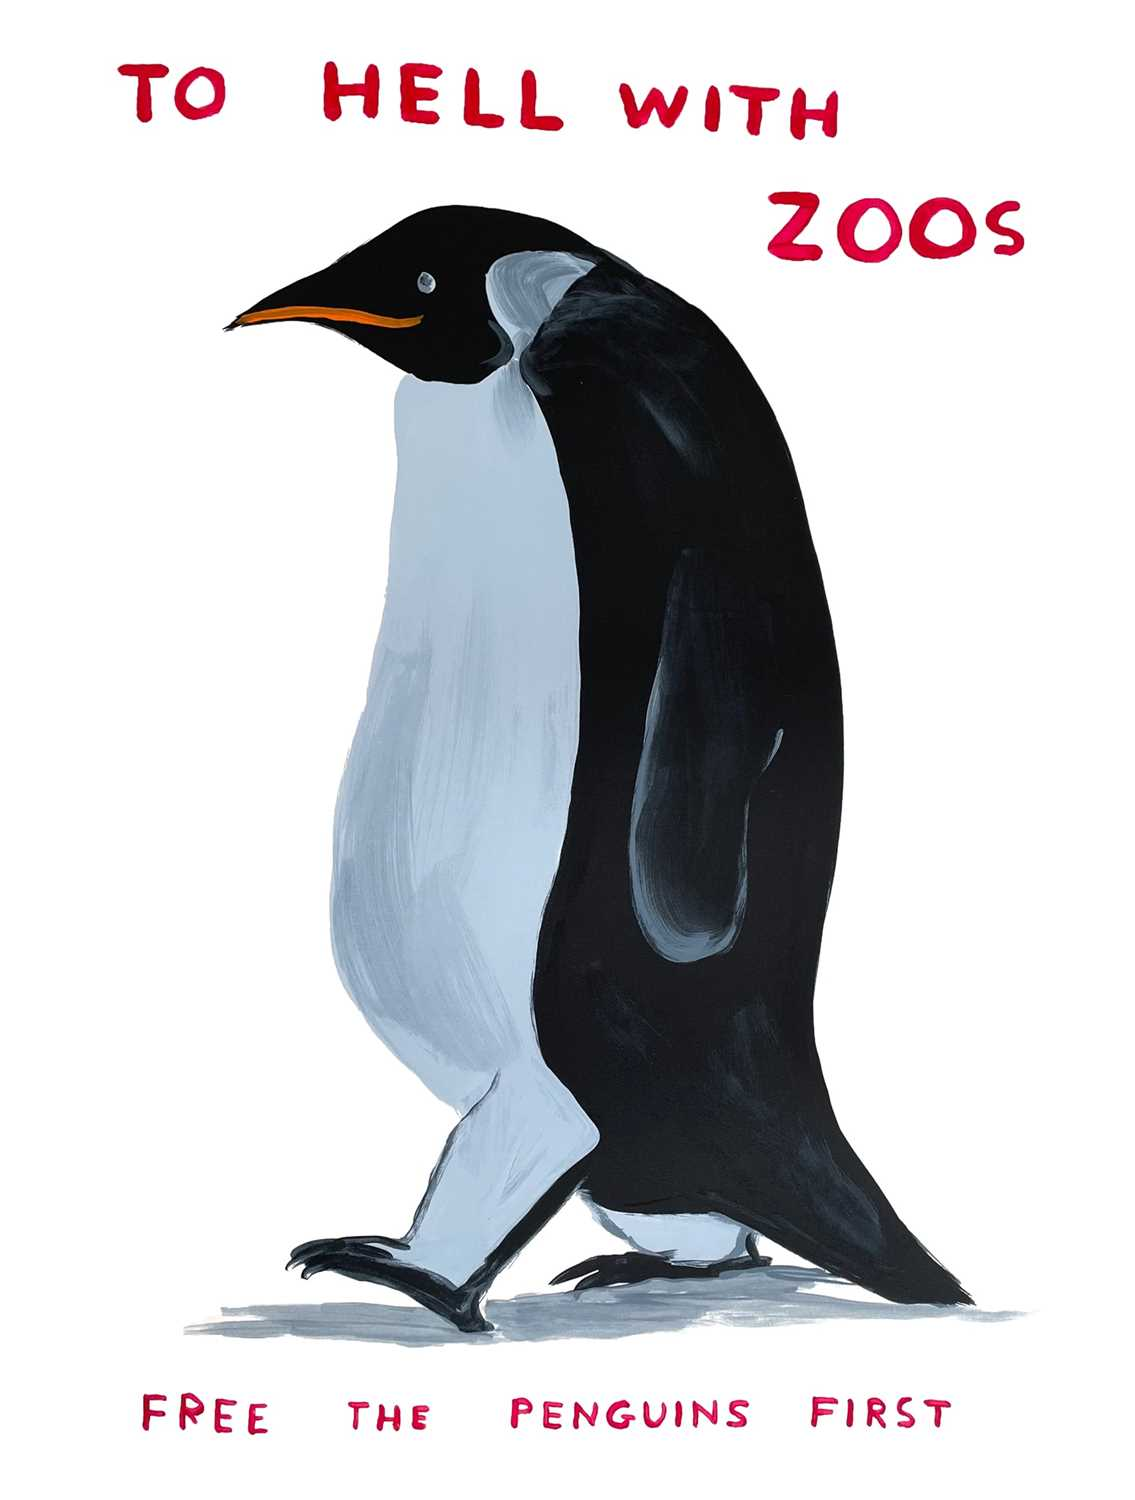 Lot 42 - David Shrigley (British 1968-), To Hell with Zoos, 2021